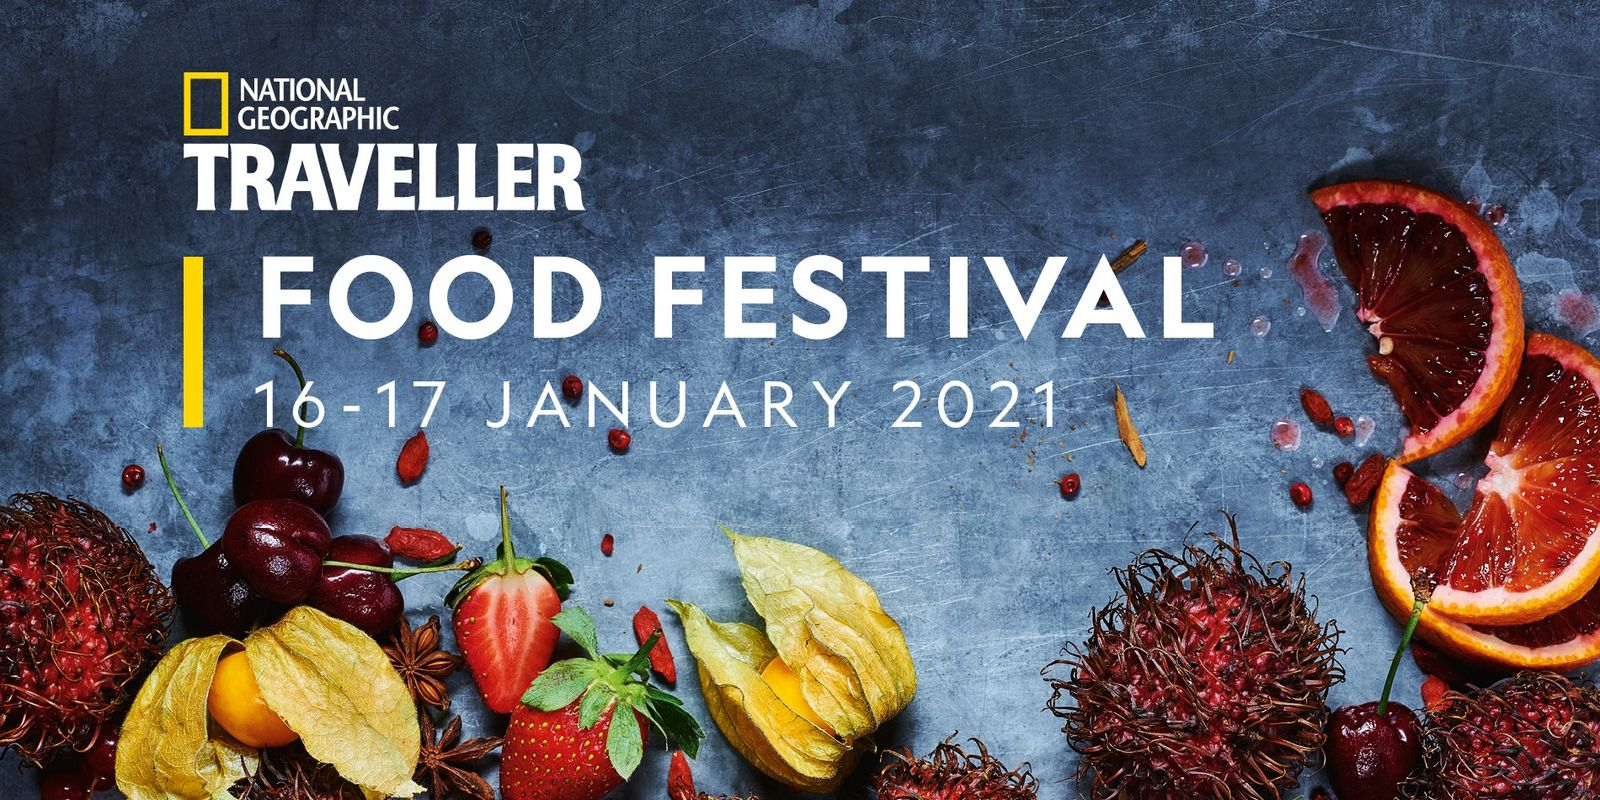 The National Geographic Traveller Food Festival 2021